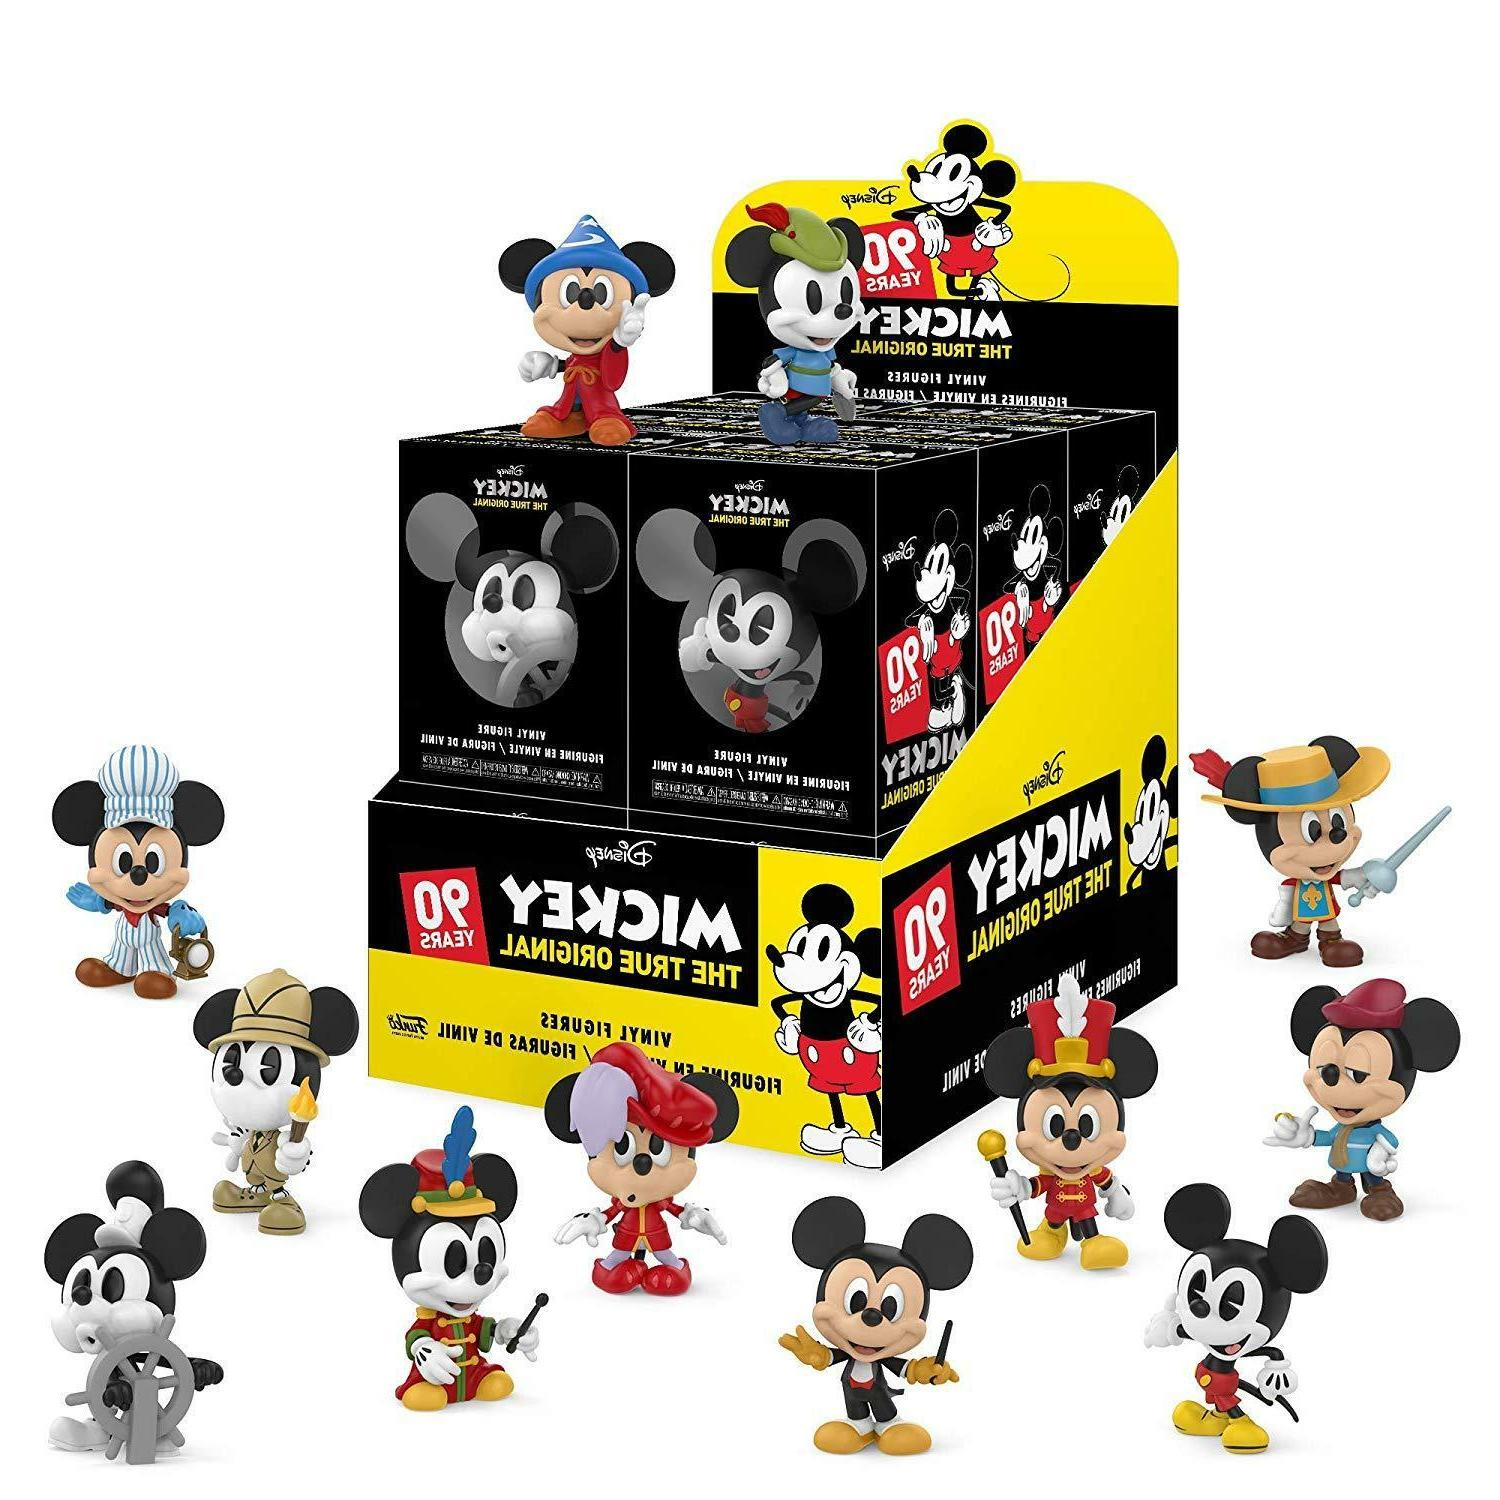 mystery minis mickey mouse 90th birthday 2